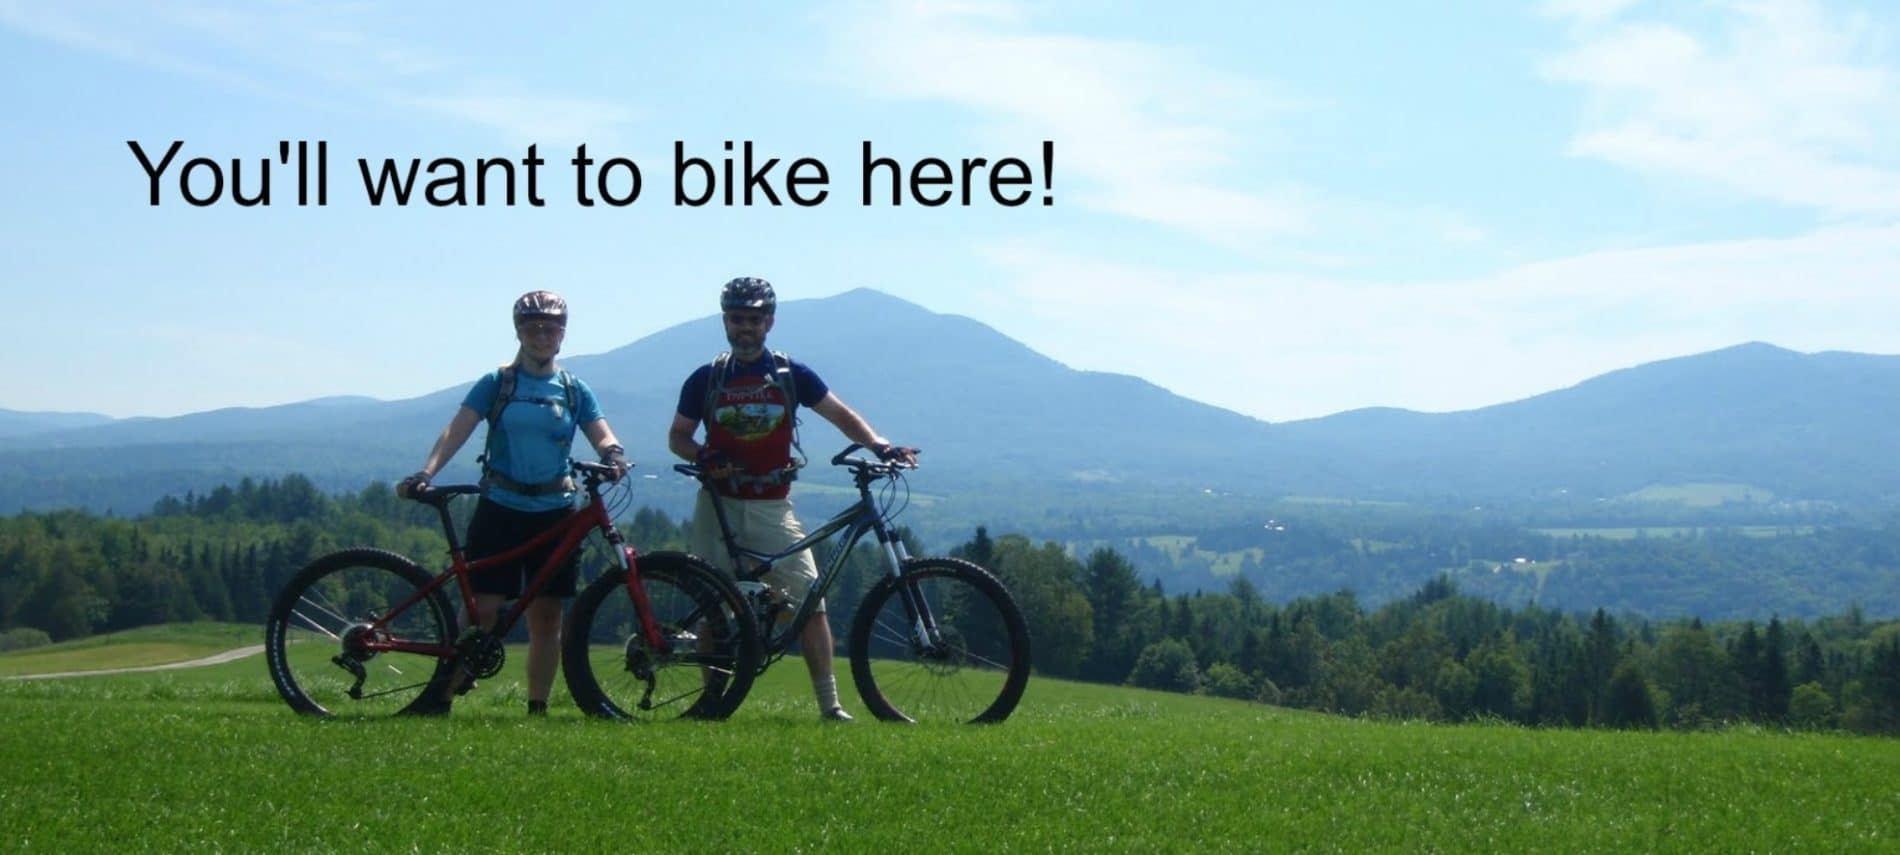 two people standing next to their mountain bikes on a grassy hill.